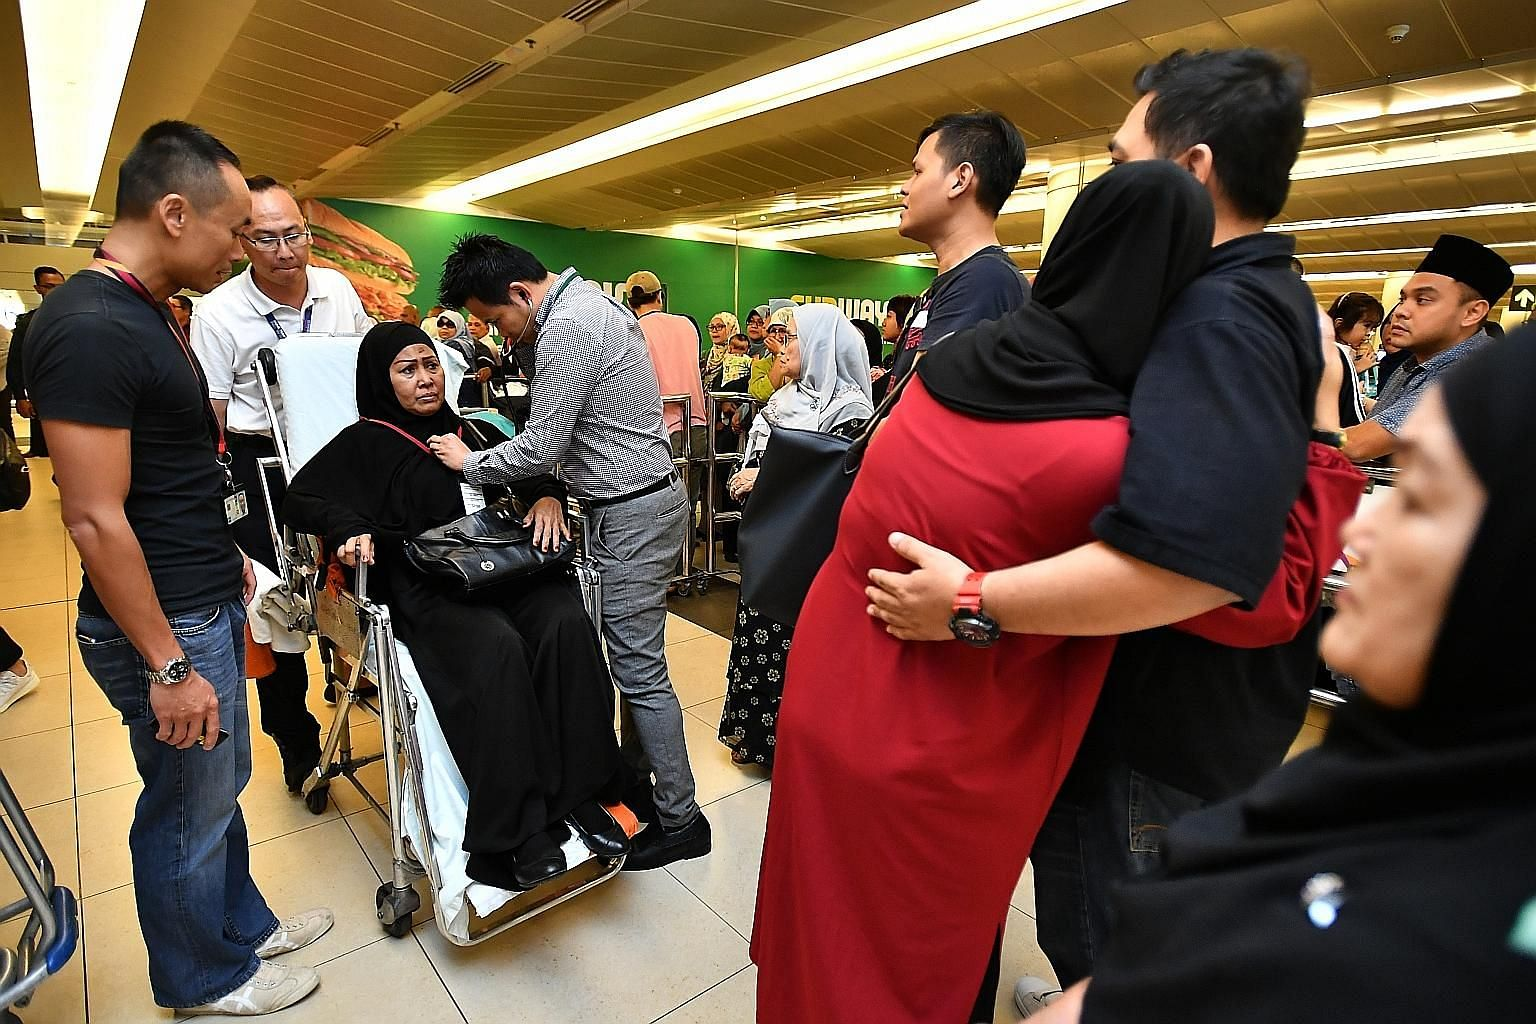 Left: Madam Hasimah Idris, 58, one of the returning pilgrims, being attended to on her arrival at Changi Airport yesterday. Below: Mr Arman Mohamed Hassan, 58, nursing his injured hand. He was among the survivors of the bus crash in Mecca last Tuesda